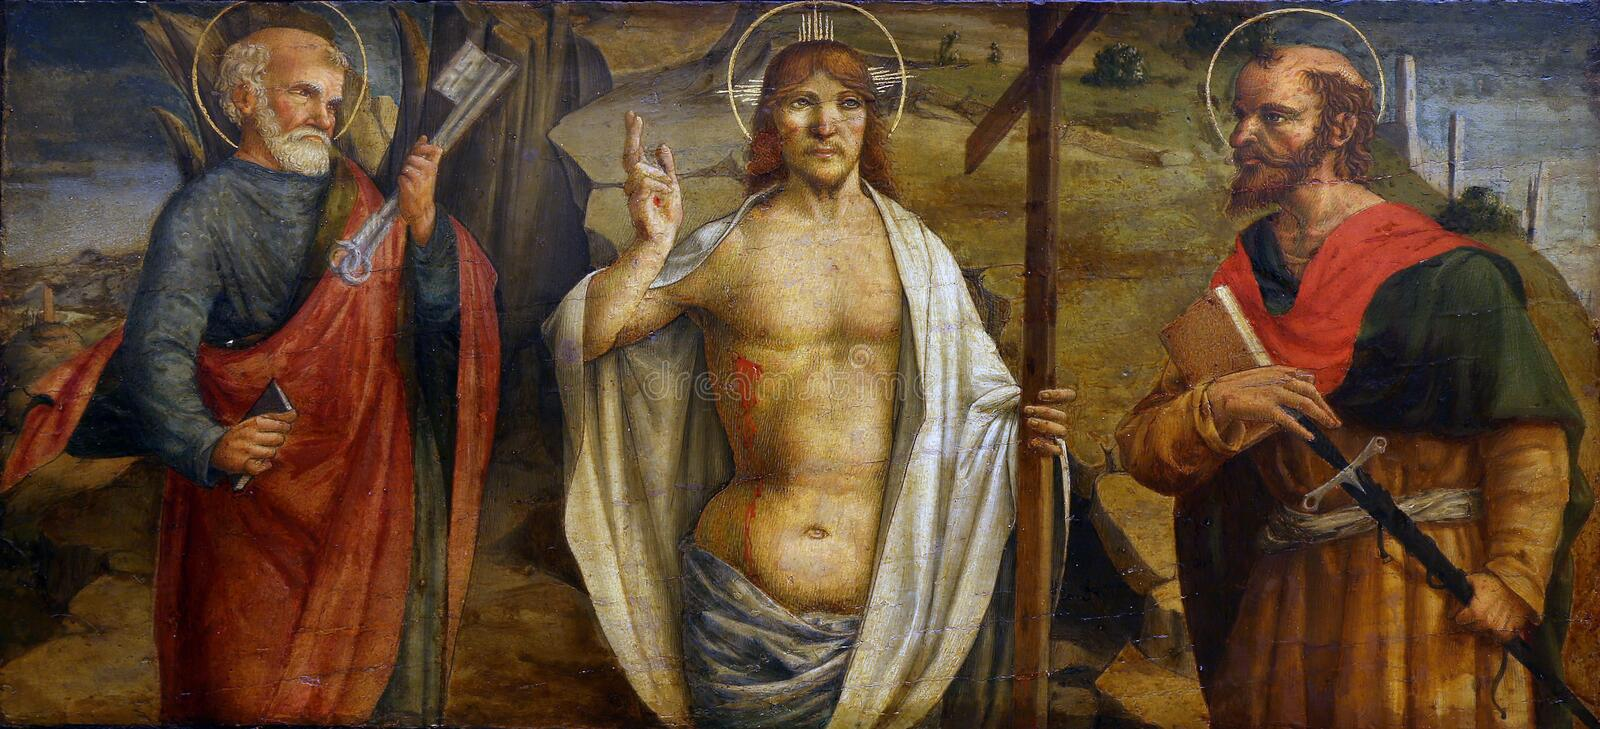 Lorenzo D Alessandro: Risen Christ with saints Peter and Paul. Exhibited at the Great Masters Renaissance in Croatia in Zagreb, Croatia stock image